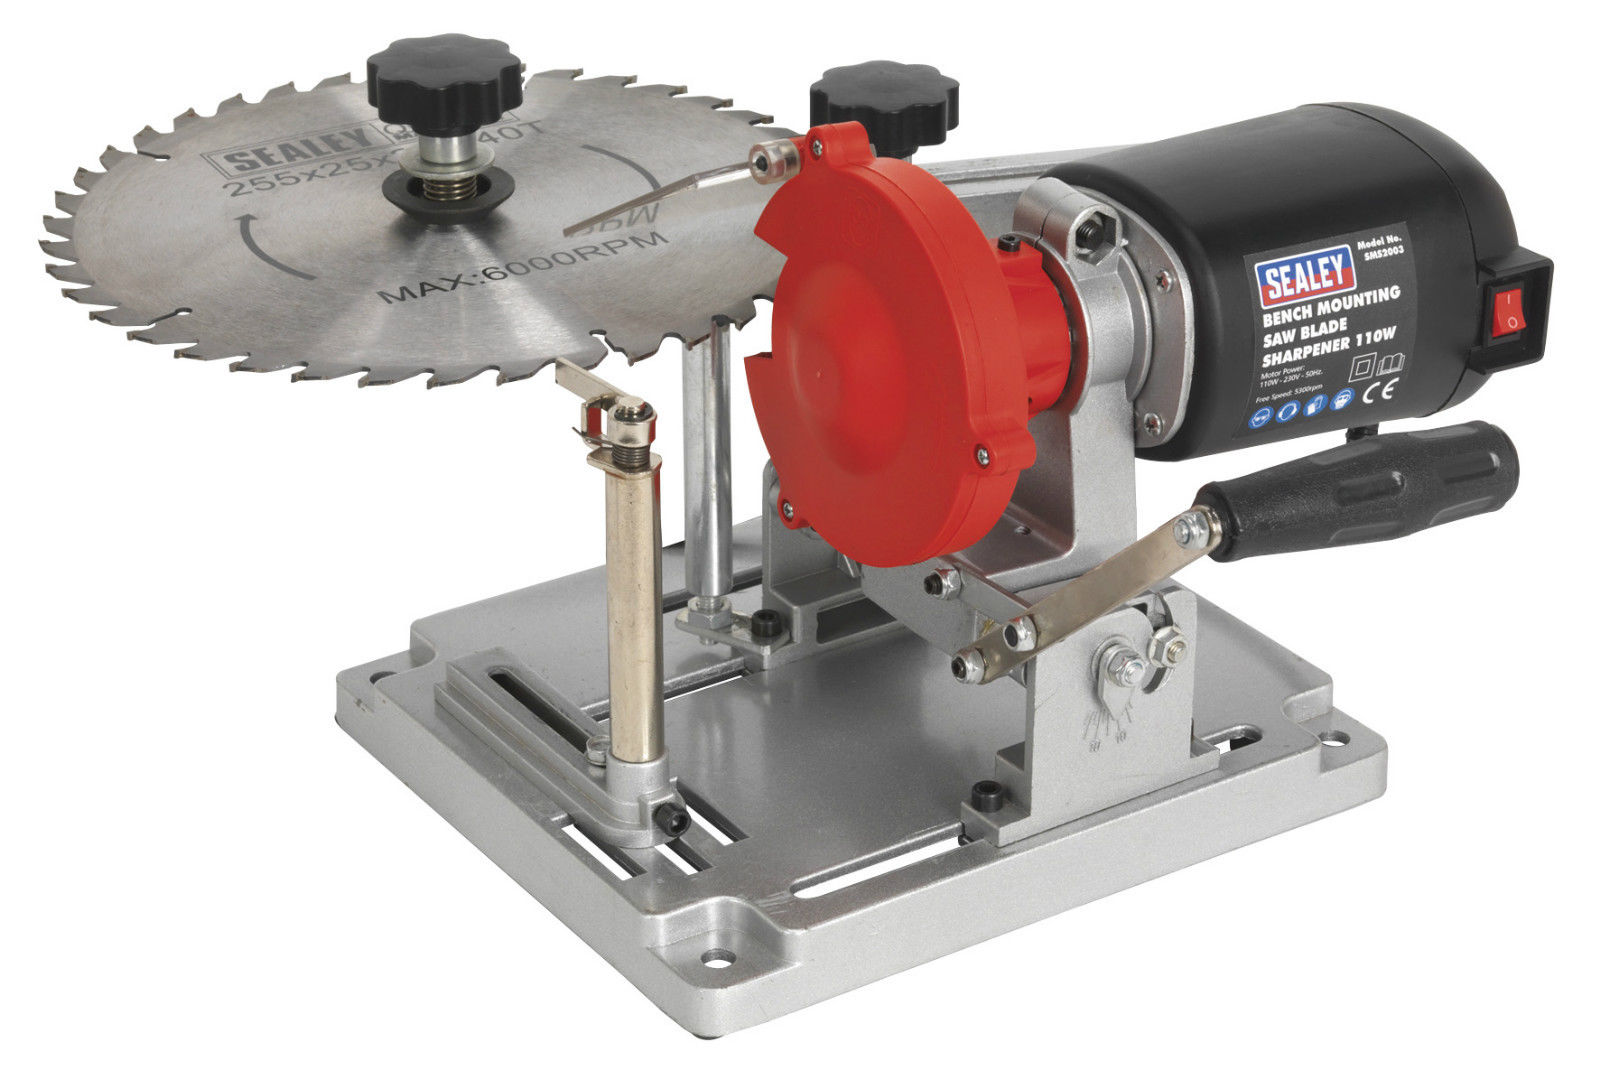 New Sealey Sms2003 Bench Mount 90mm 400mm Tct Saw Blade